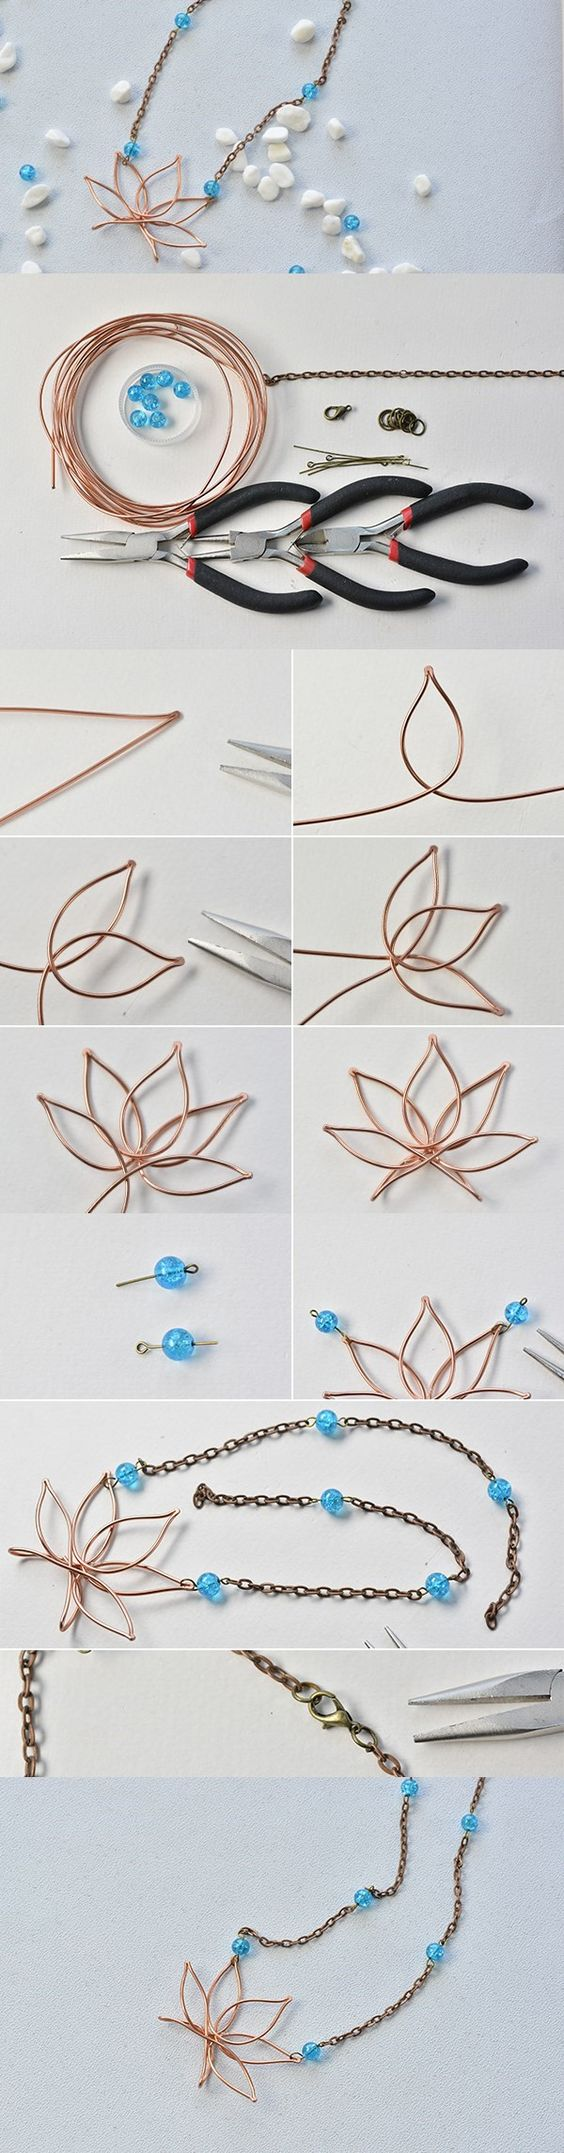 25 Creative Diy Wire Projects 2018